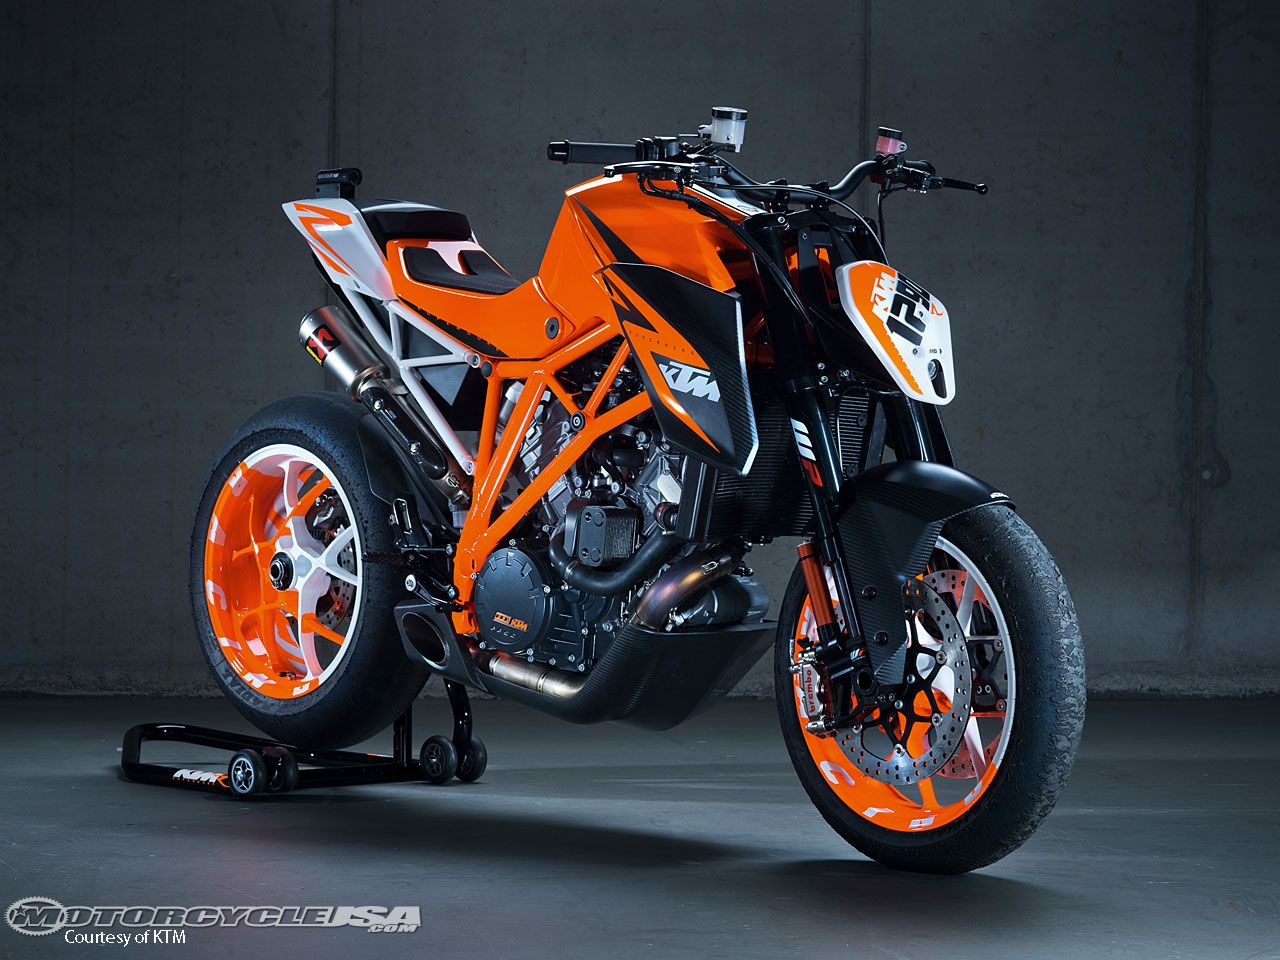 ktm super duke 1290 ktm super duke 1290 auf der eicma seite 7 fremdmarken modelle. Black Bedroom Furniture Sets. Home Design Ideas